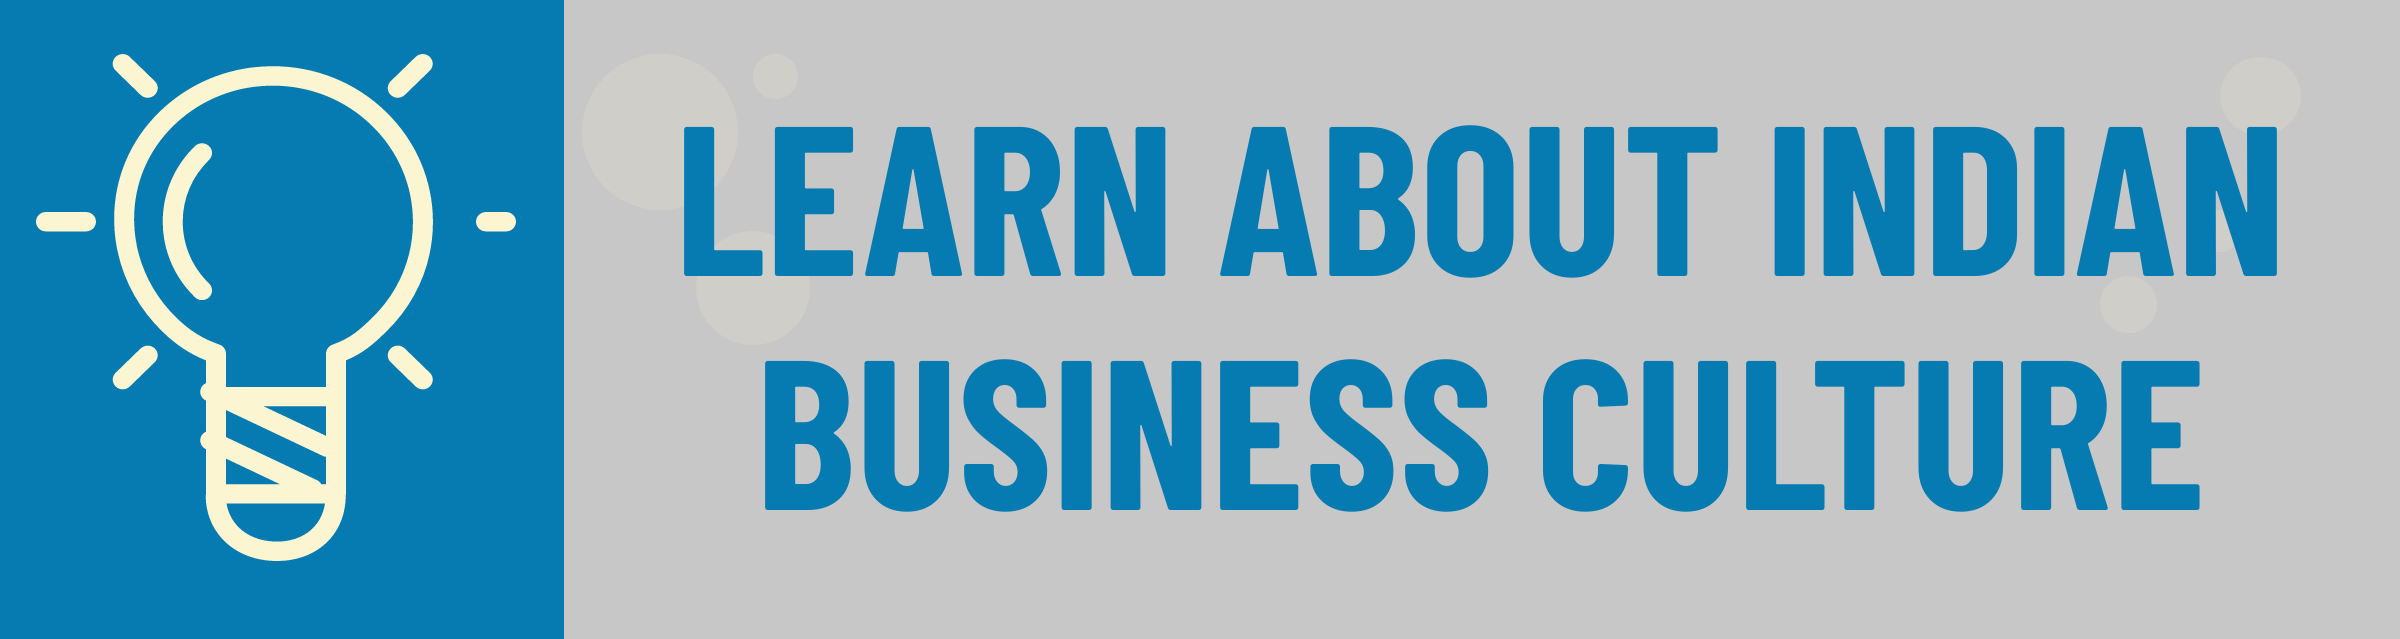 Banner: Learn About Indian Business Culture